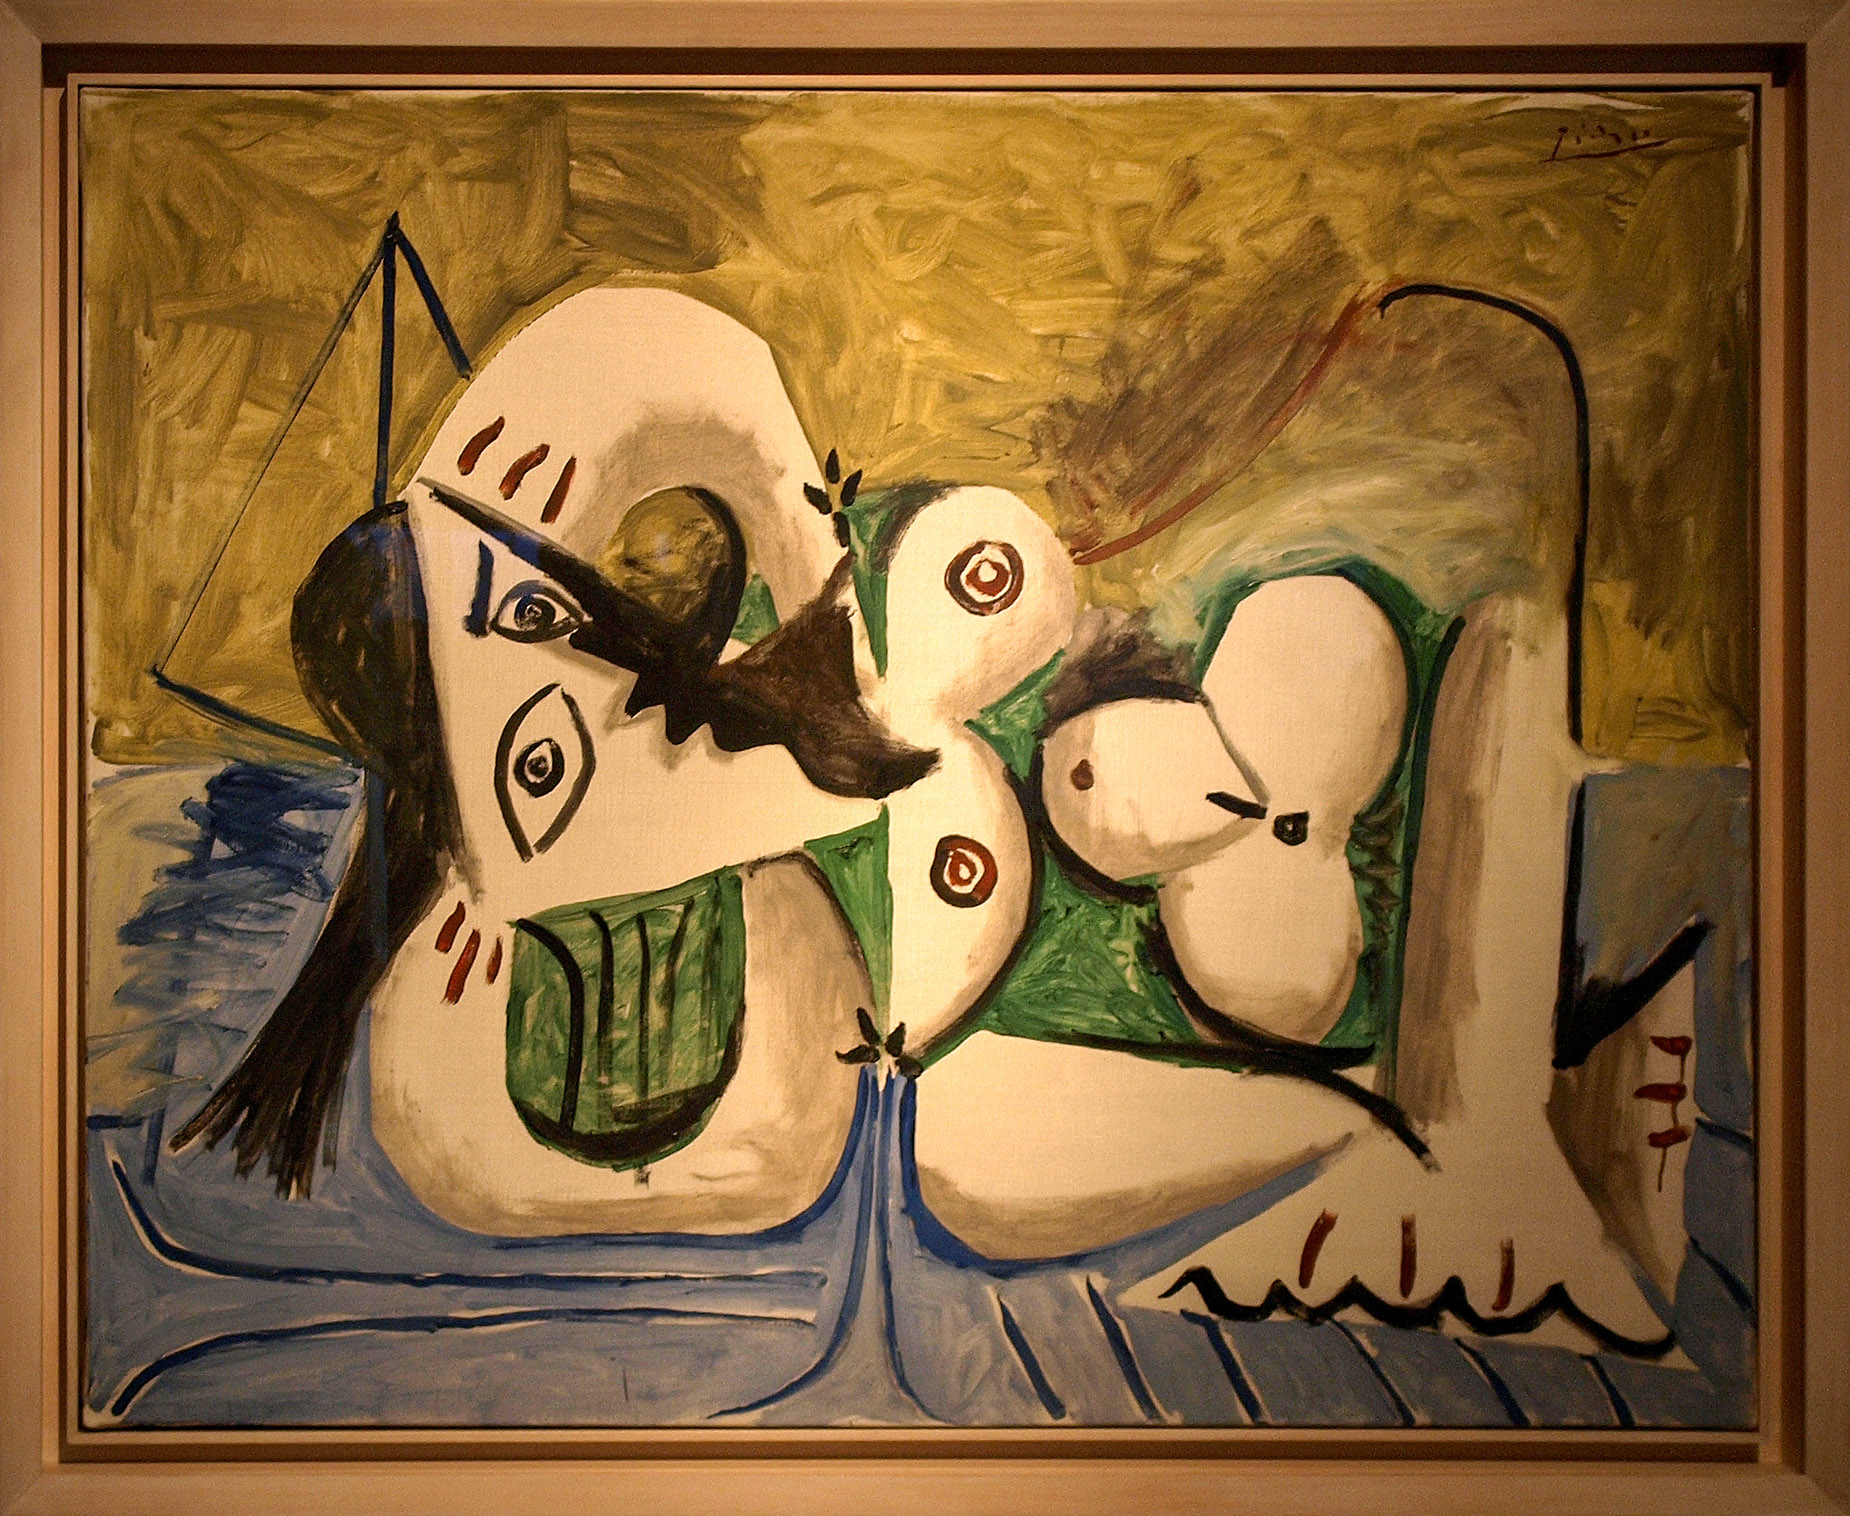 Kunstmuseum, Picasso